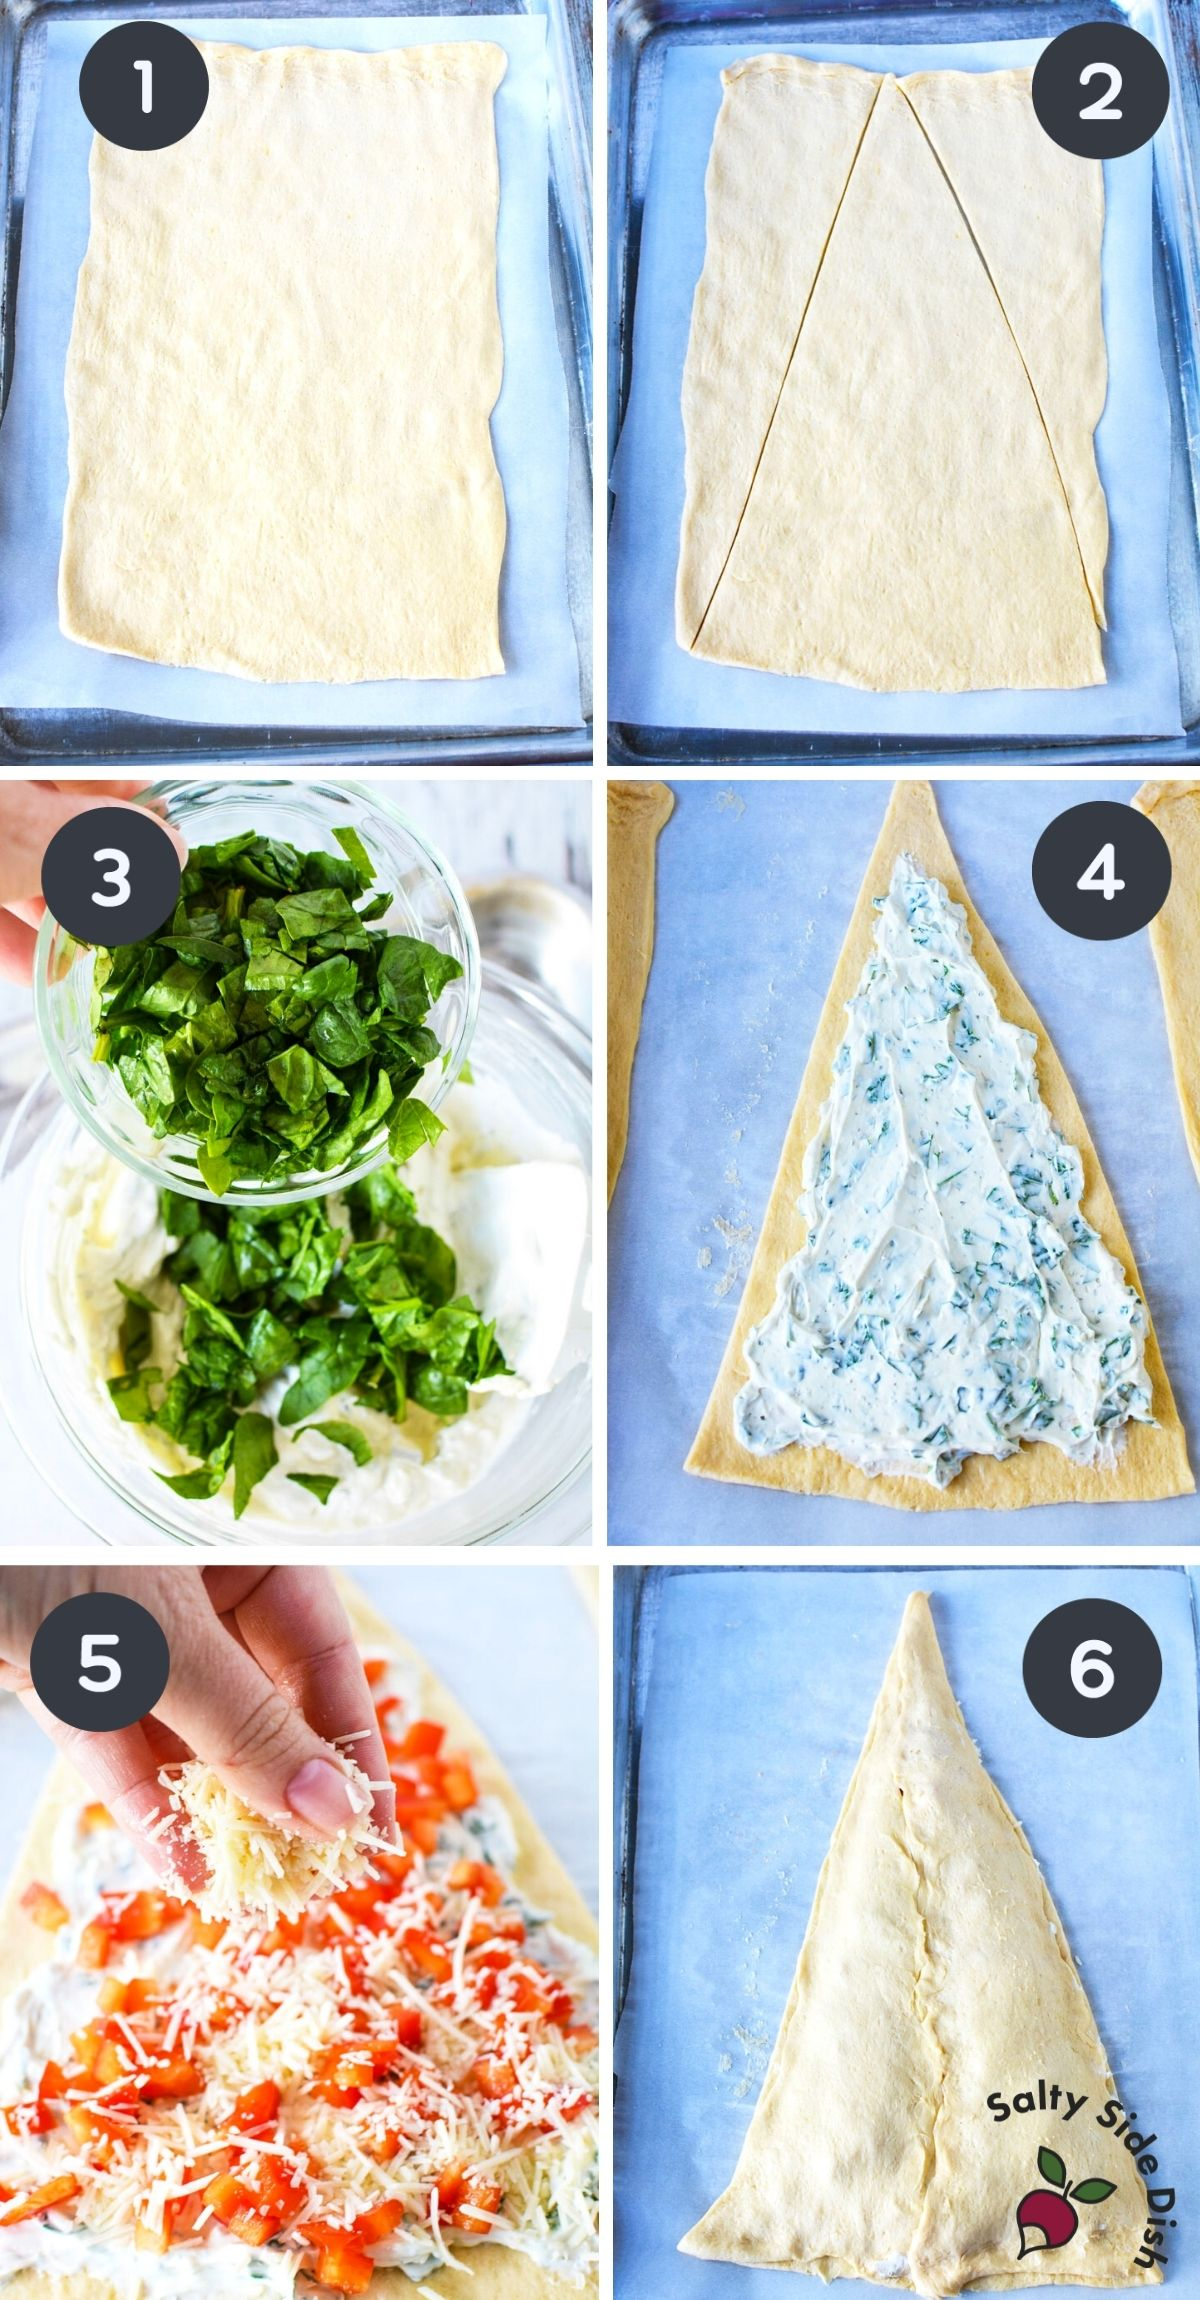 6 image collage on how to lay out bread dough and cut into a tree